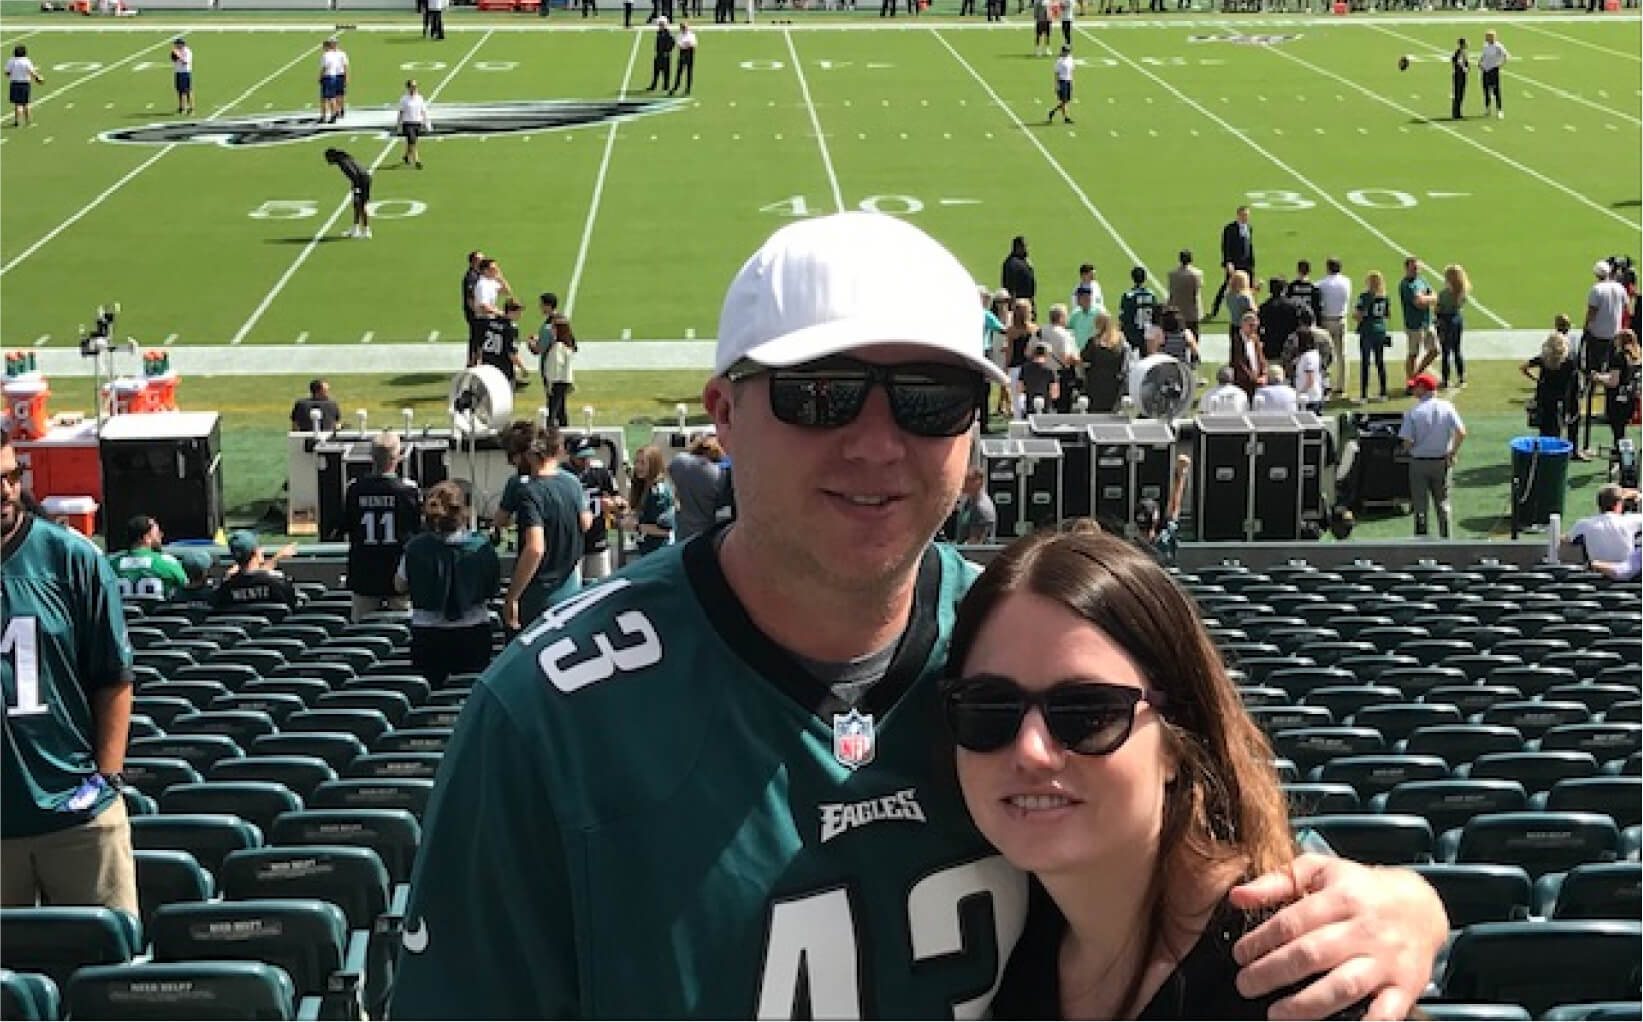 Bryan at the Philadelphia Eagles' football stadium with his wife, Jenna. Bryan is wearing an Eagles jersey, a cap and sunglasses.